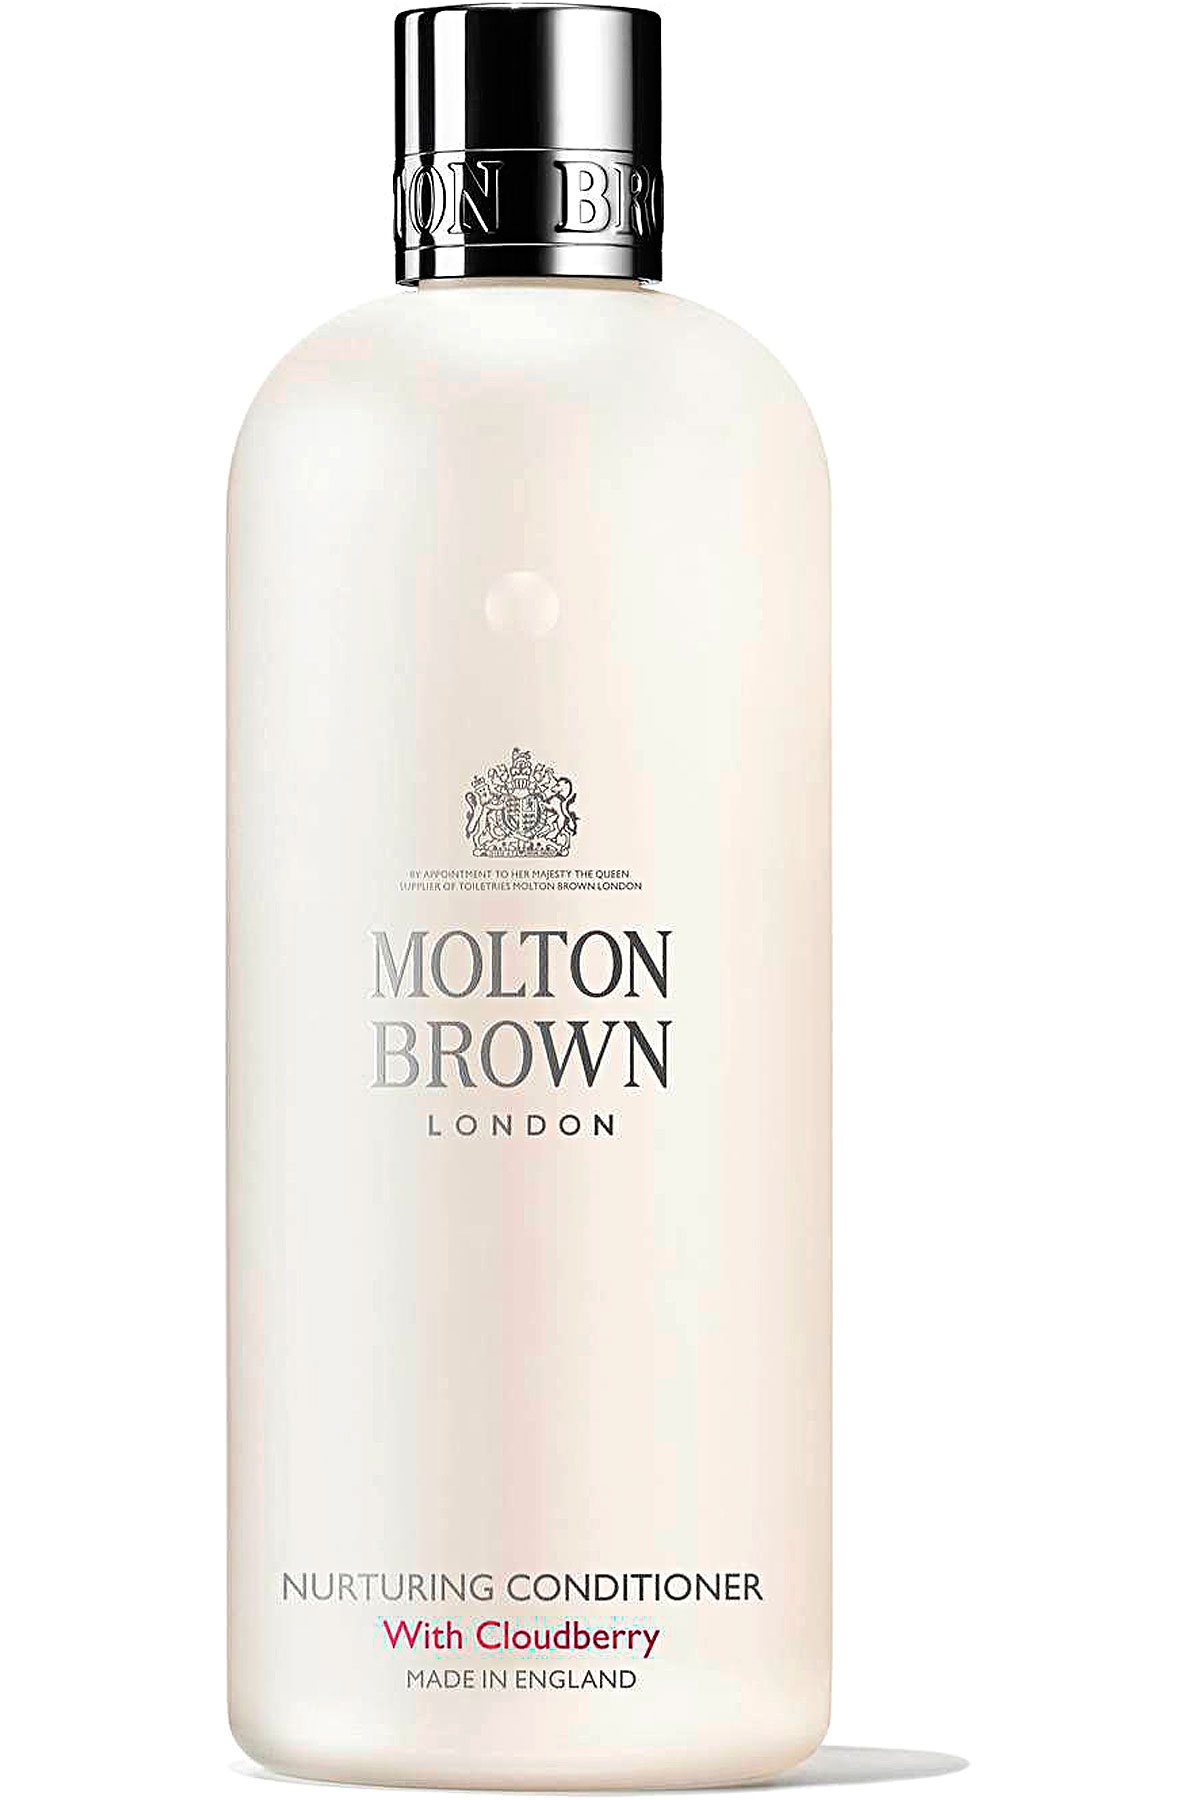 Molton Brown Beauty for Women, Cloudberry - Nurturing Conditioner - 300 Ml, 2019, 300 ml